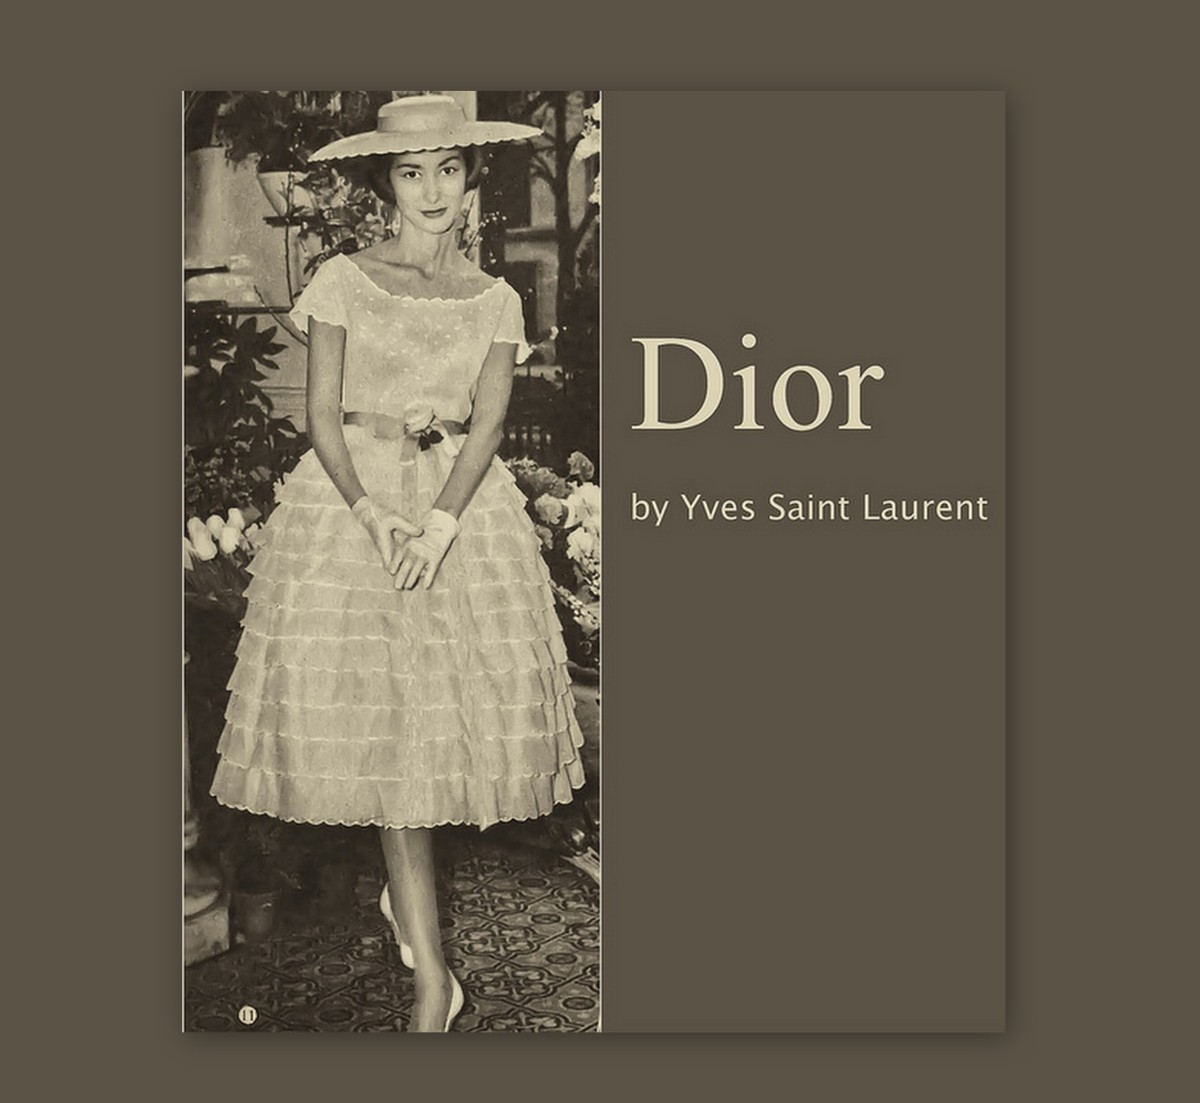 Christian Dior - Architect or Fashion Designer?